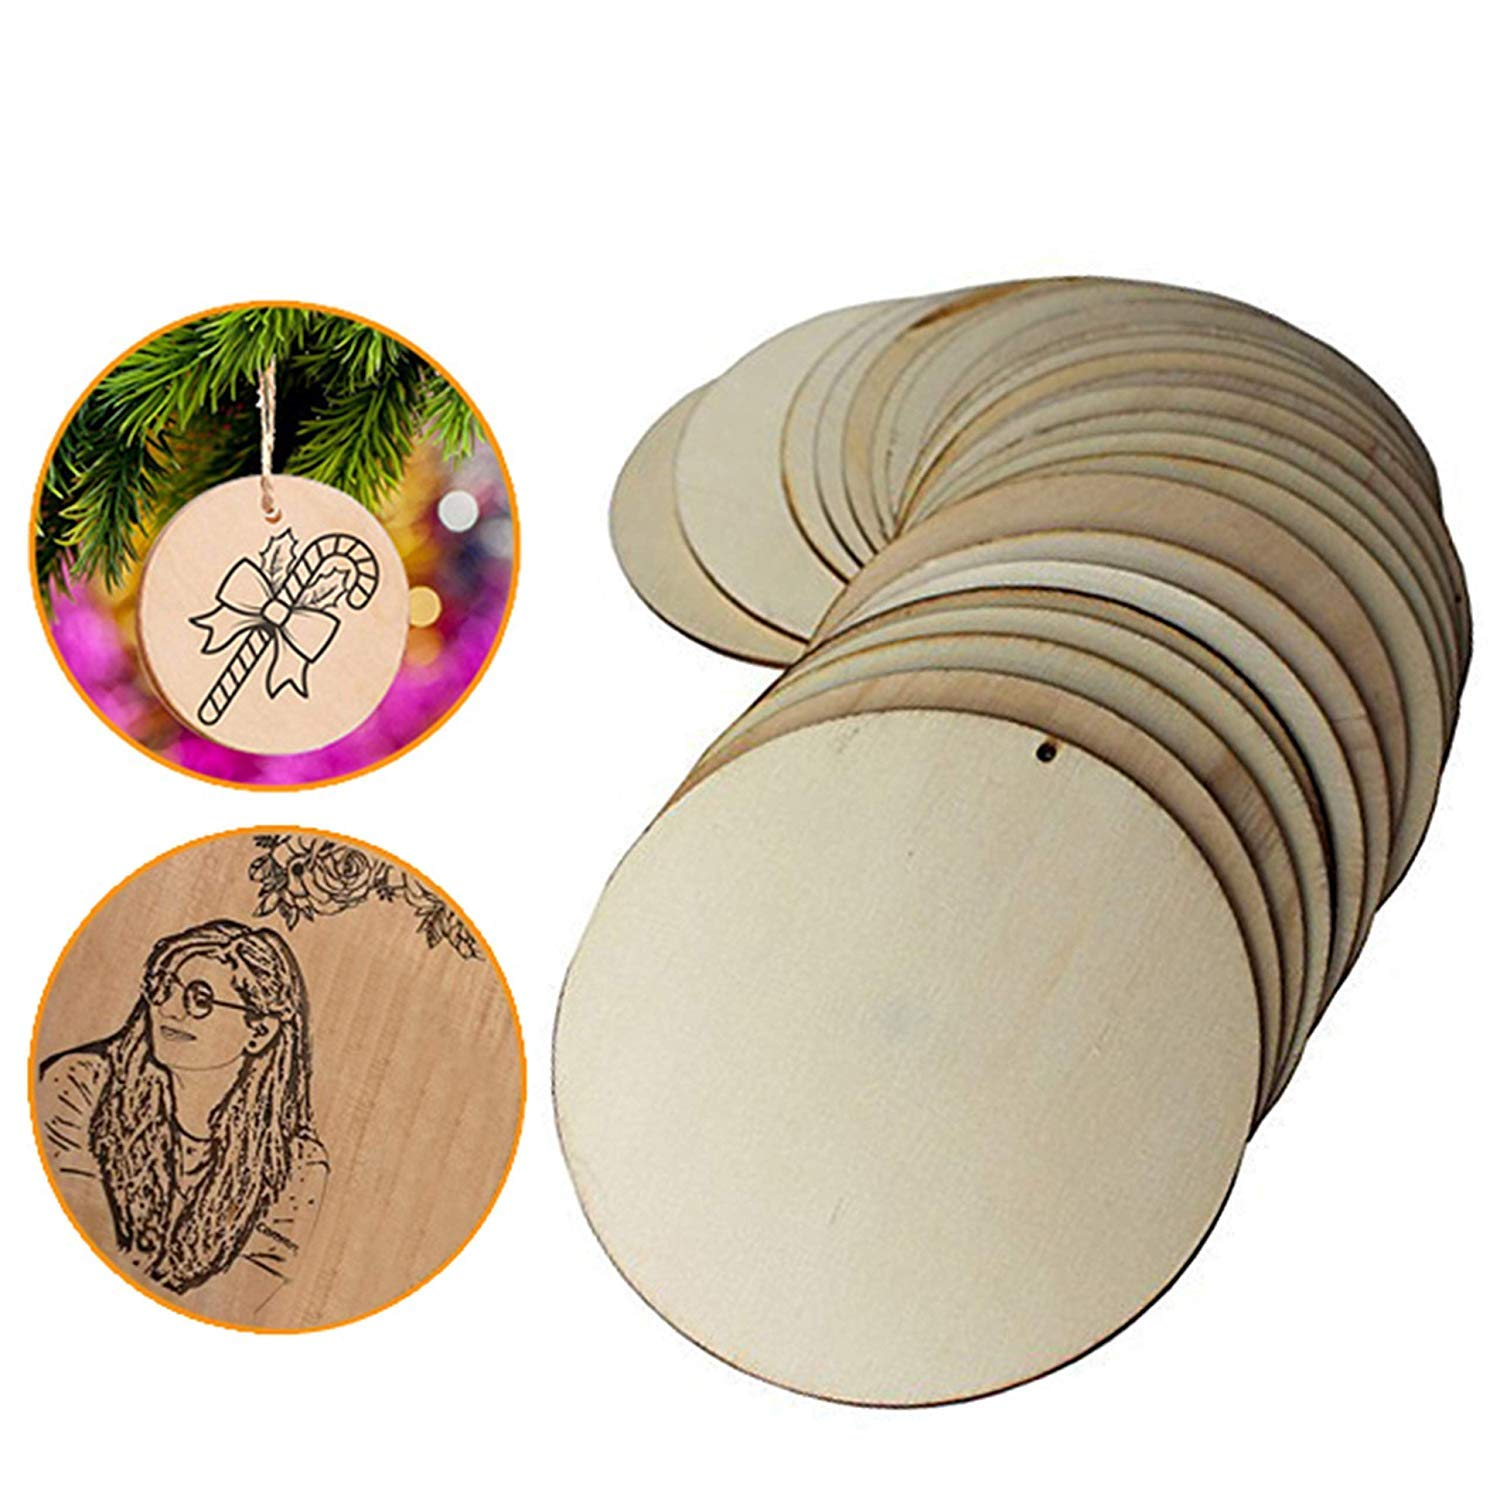 Decorations - Unfinished Round Discs Birthday 50pcs Wood Circles Blank Wooden Tags Slices Cutouts for DIY Crafts 3.9 Inch//10 cm Game Boards